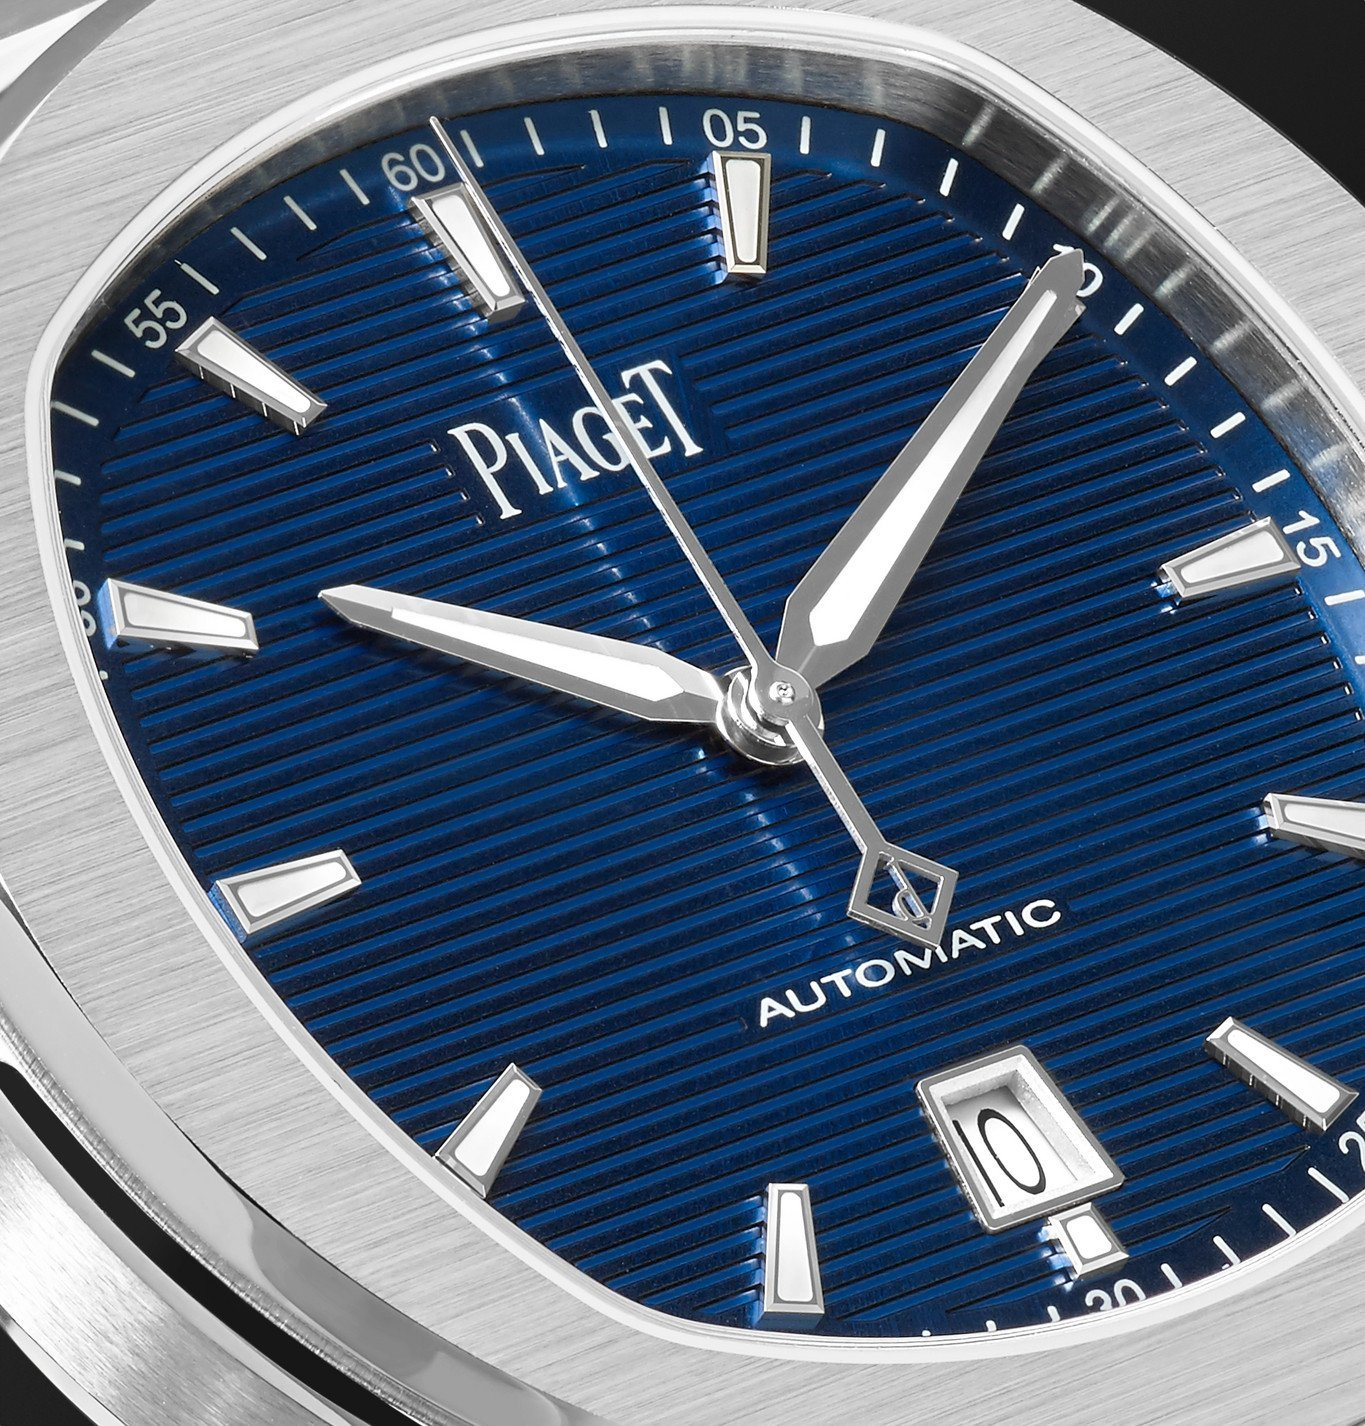 Piaget - Polo S Automatic 42mm Stainless Steel Watch, Ref. No. G0A41002 - Blue